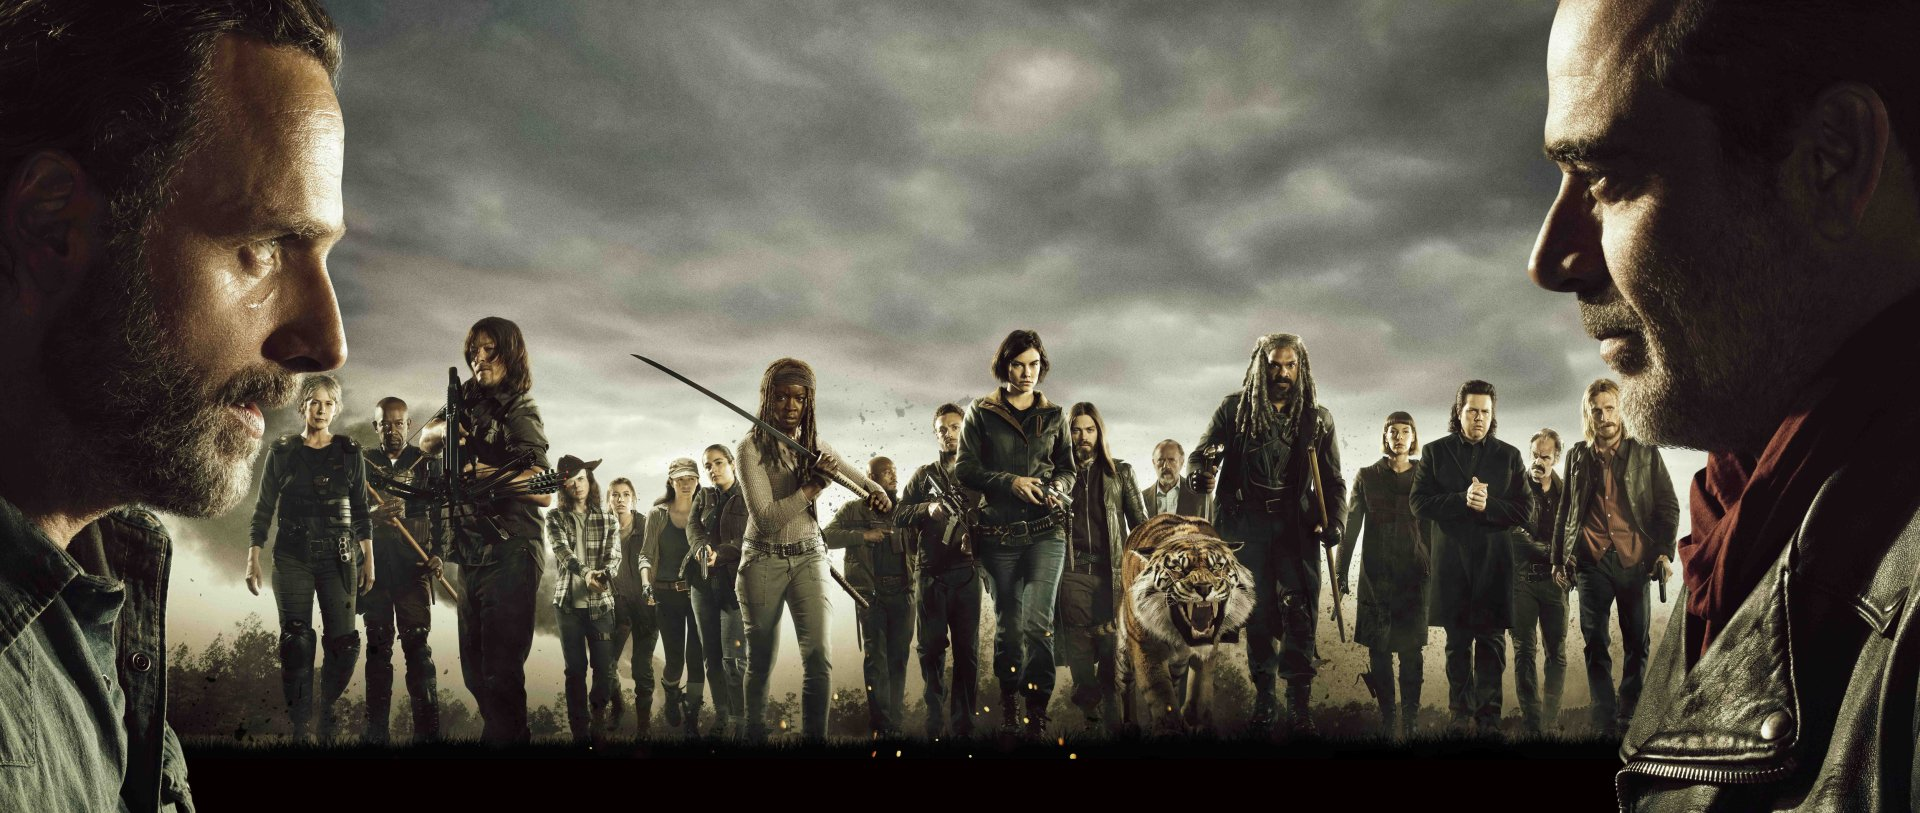 Walking Dead Wallpaper Kolpaper Awesome Free Hd Wallpapers